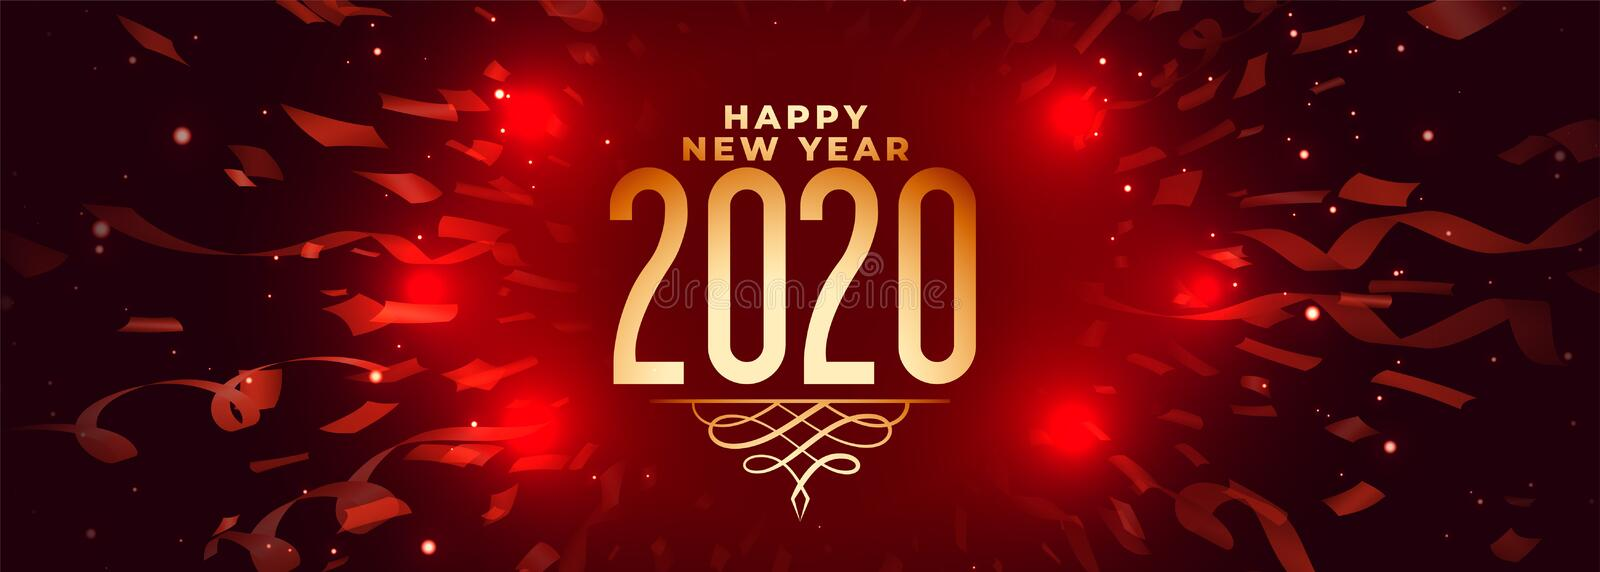 2020 happy new year celebration red banner with confetti stock illustration